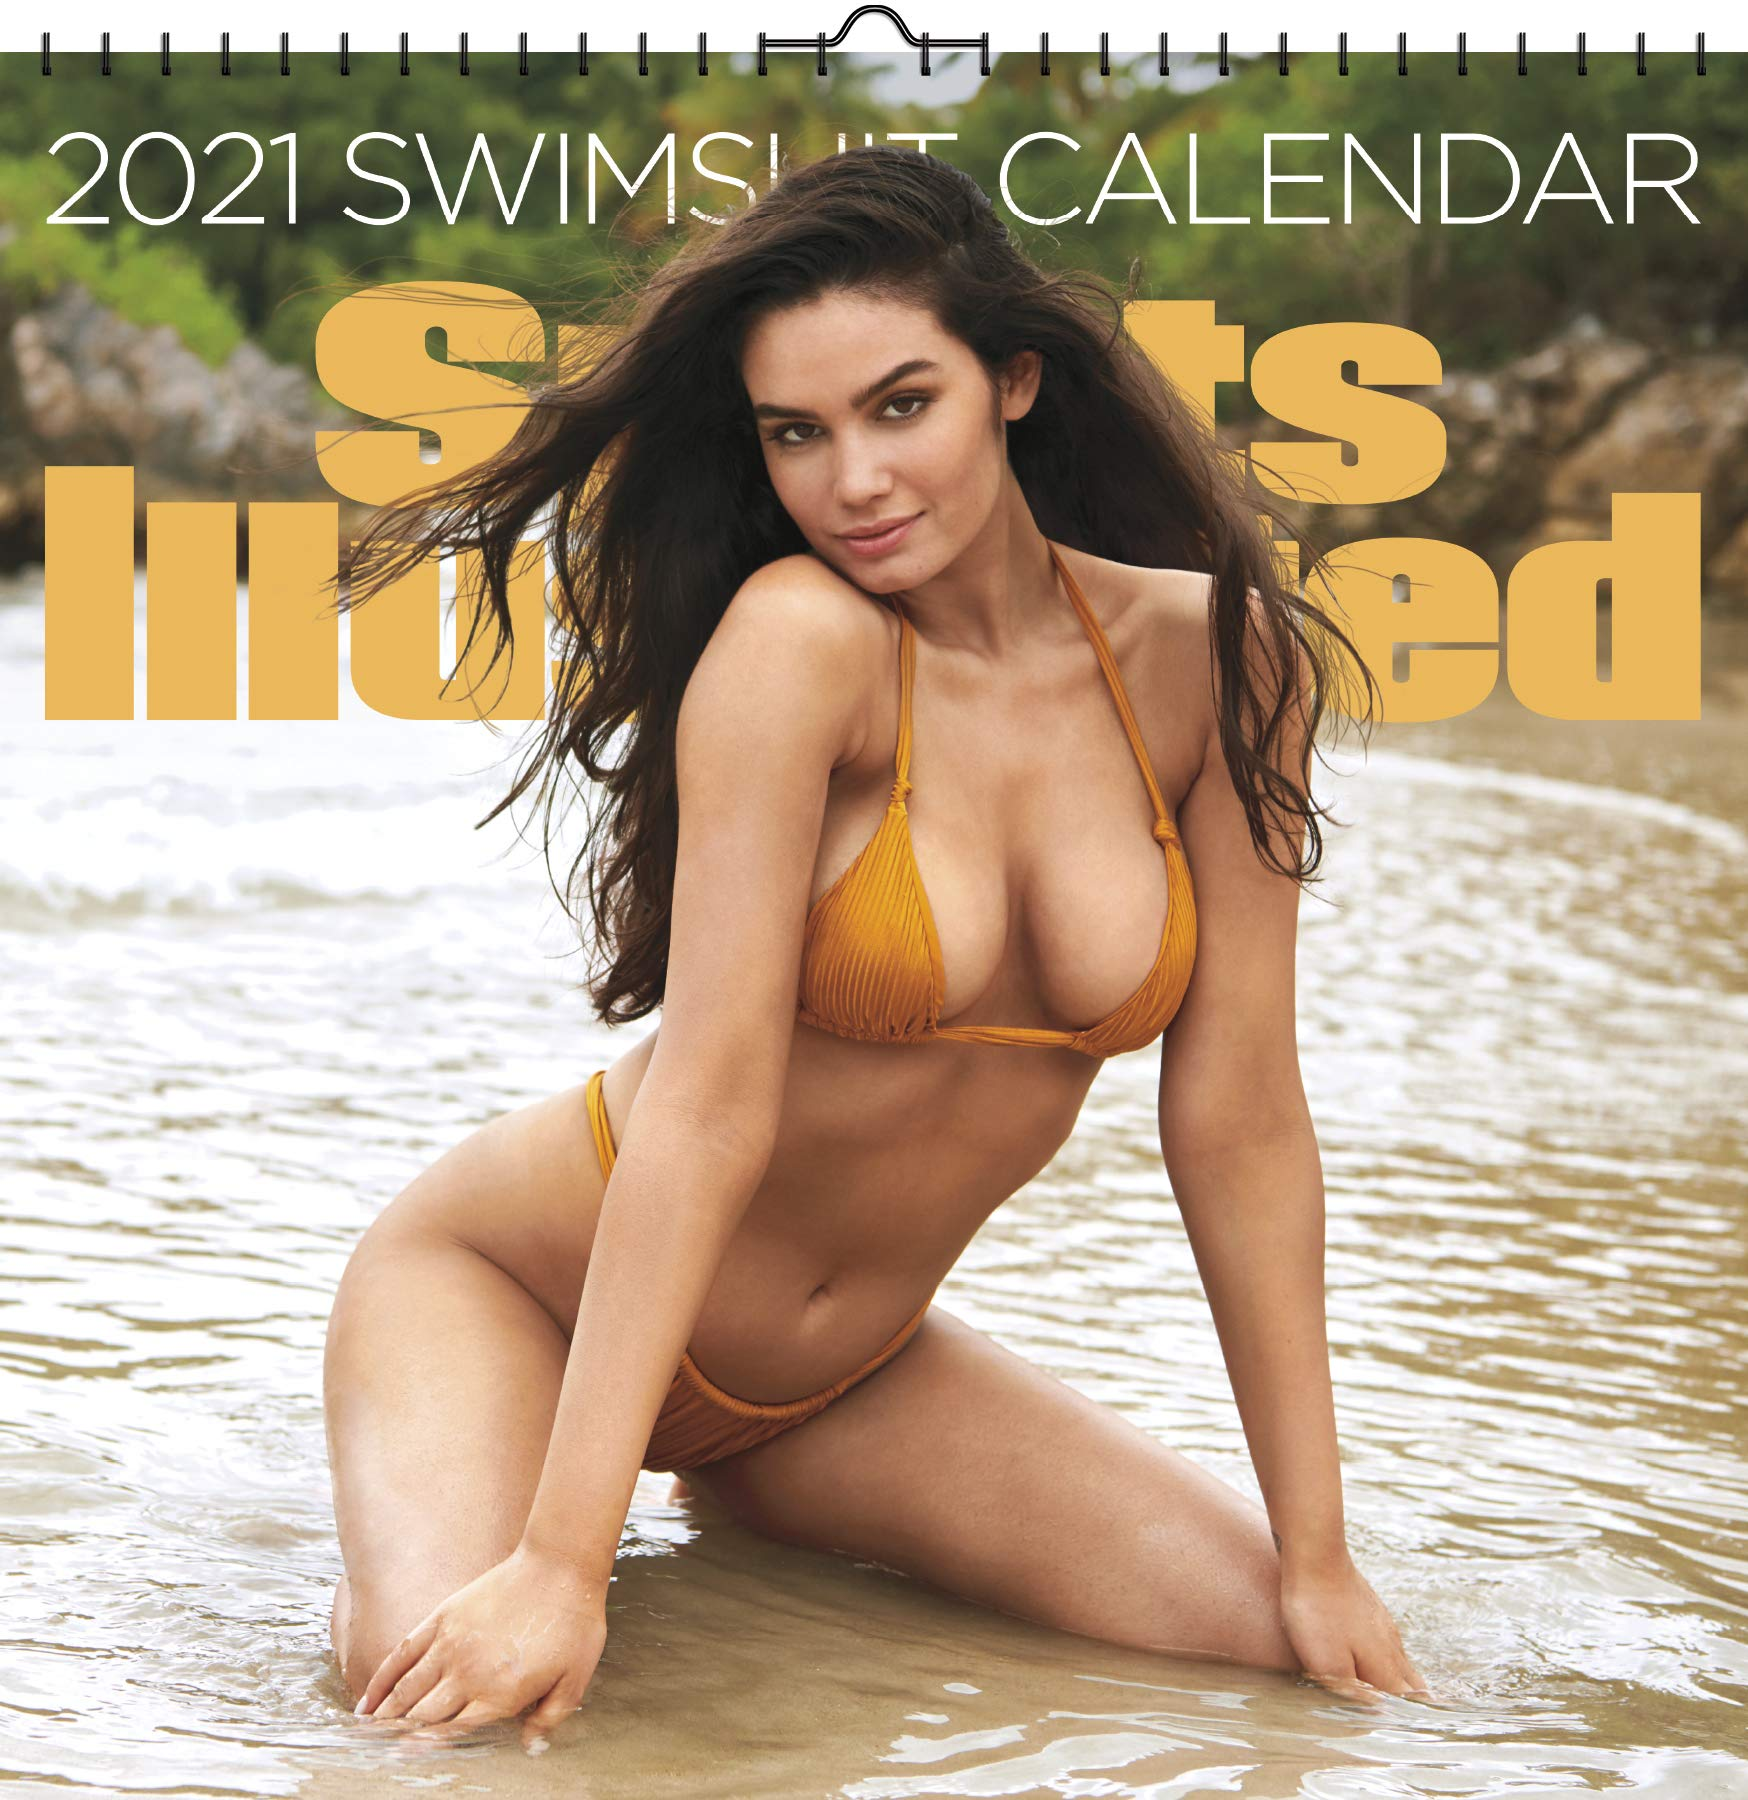 2021 Sports Illustrated Swimsuit Deluxe Calendar: Trends